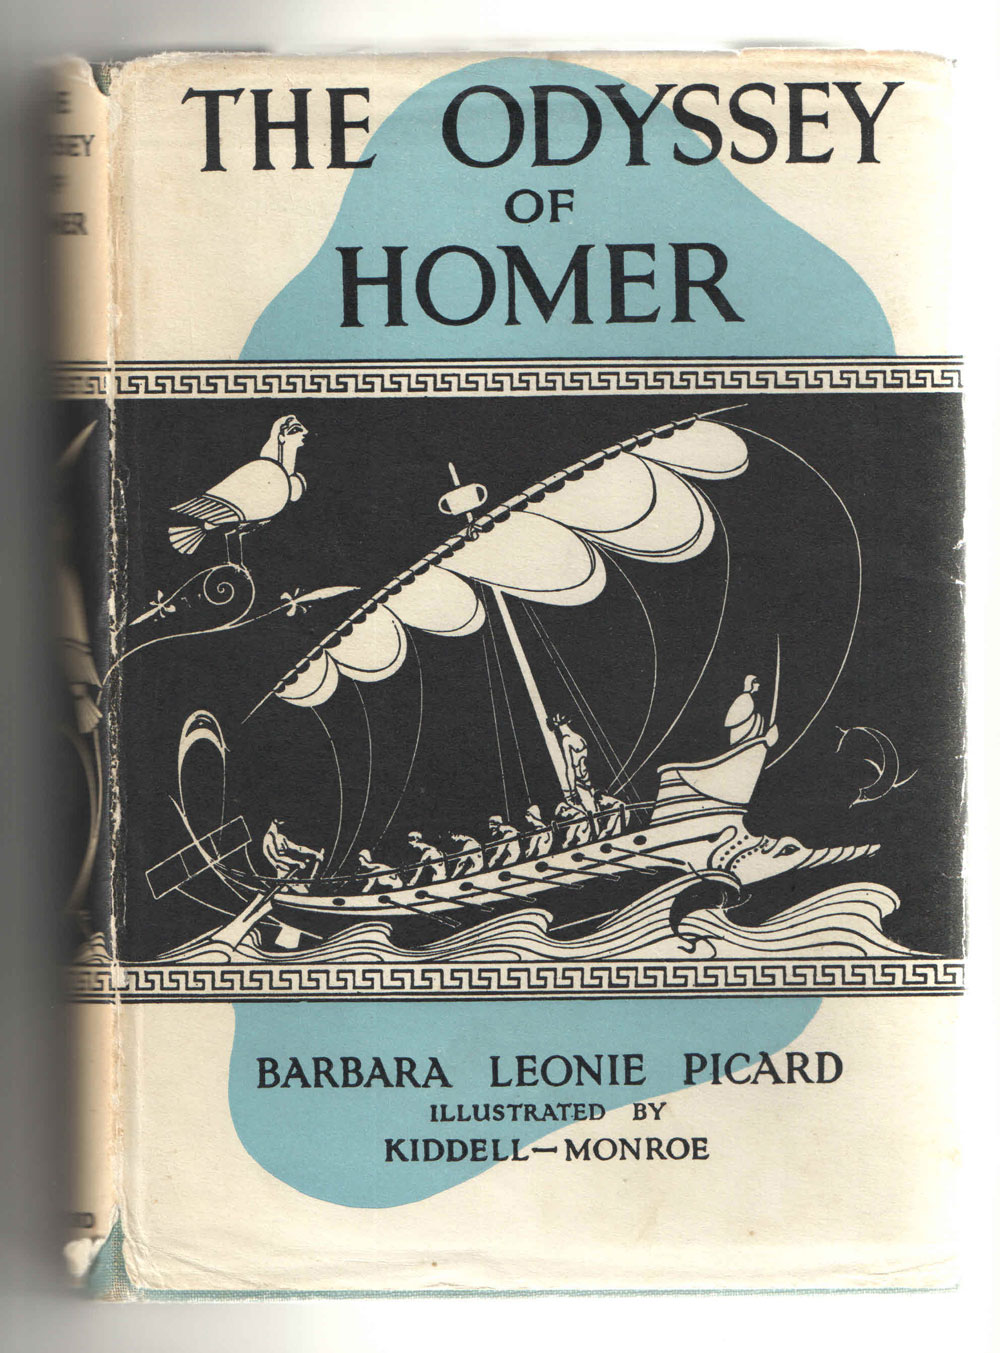 My copy of Barbara Leonie Picard's Odyssey